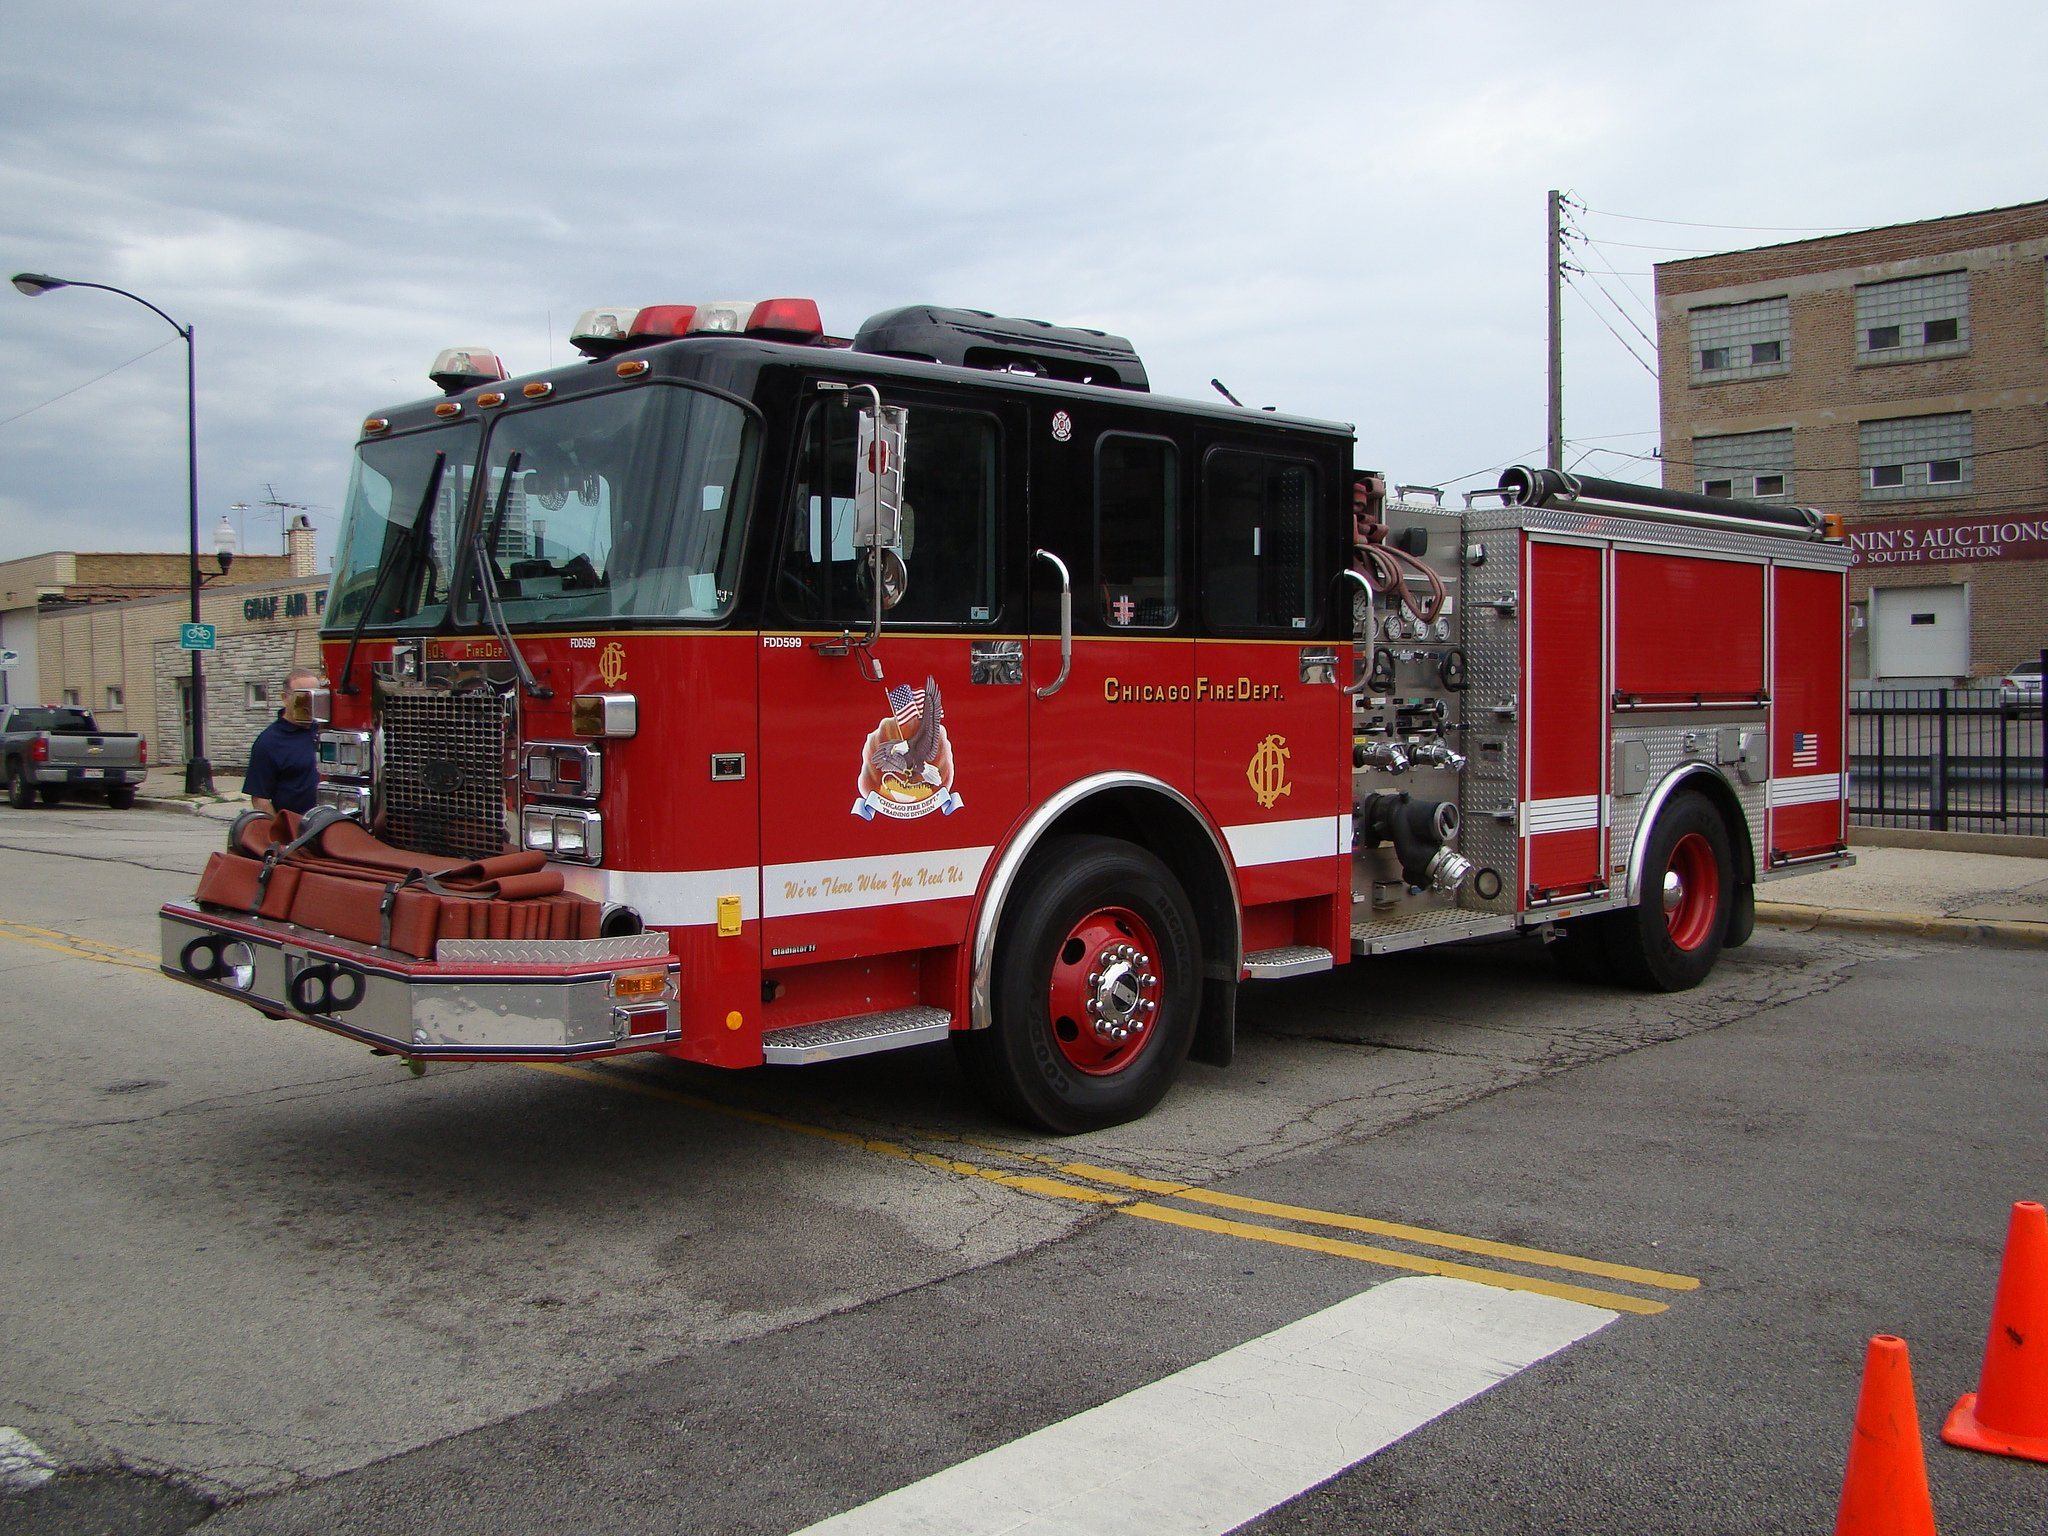 Small Size Car Wallpapers Ambulance Fire Truck Fire Departments Usa Europe Rescue